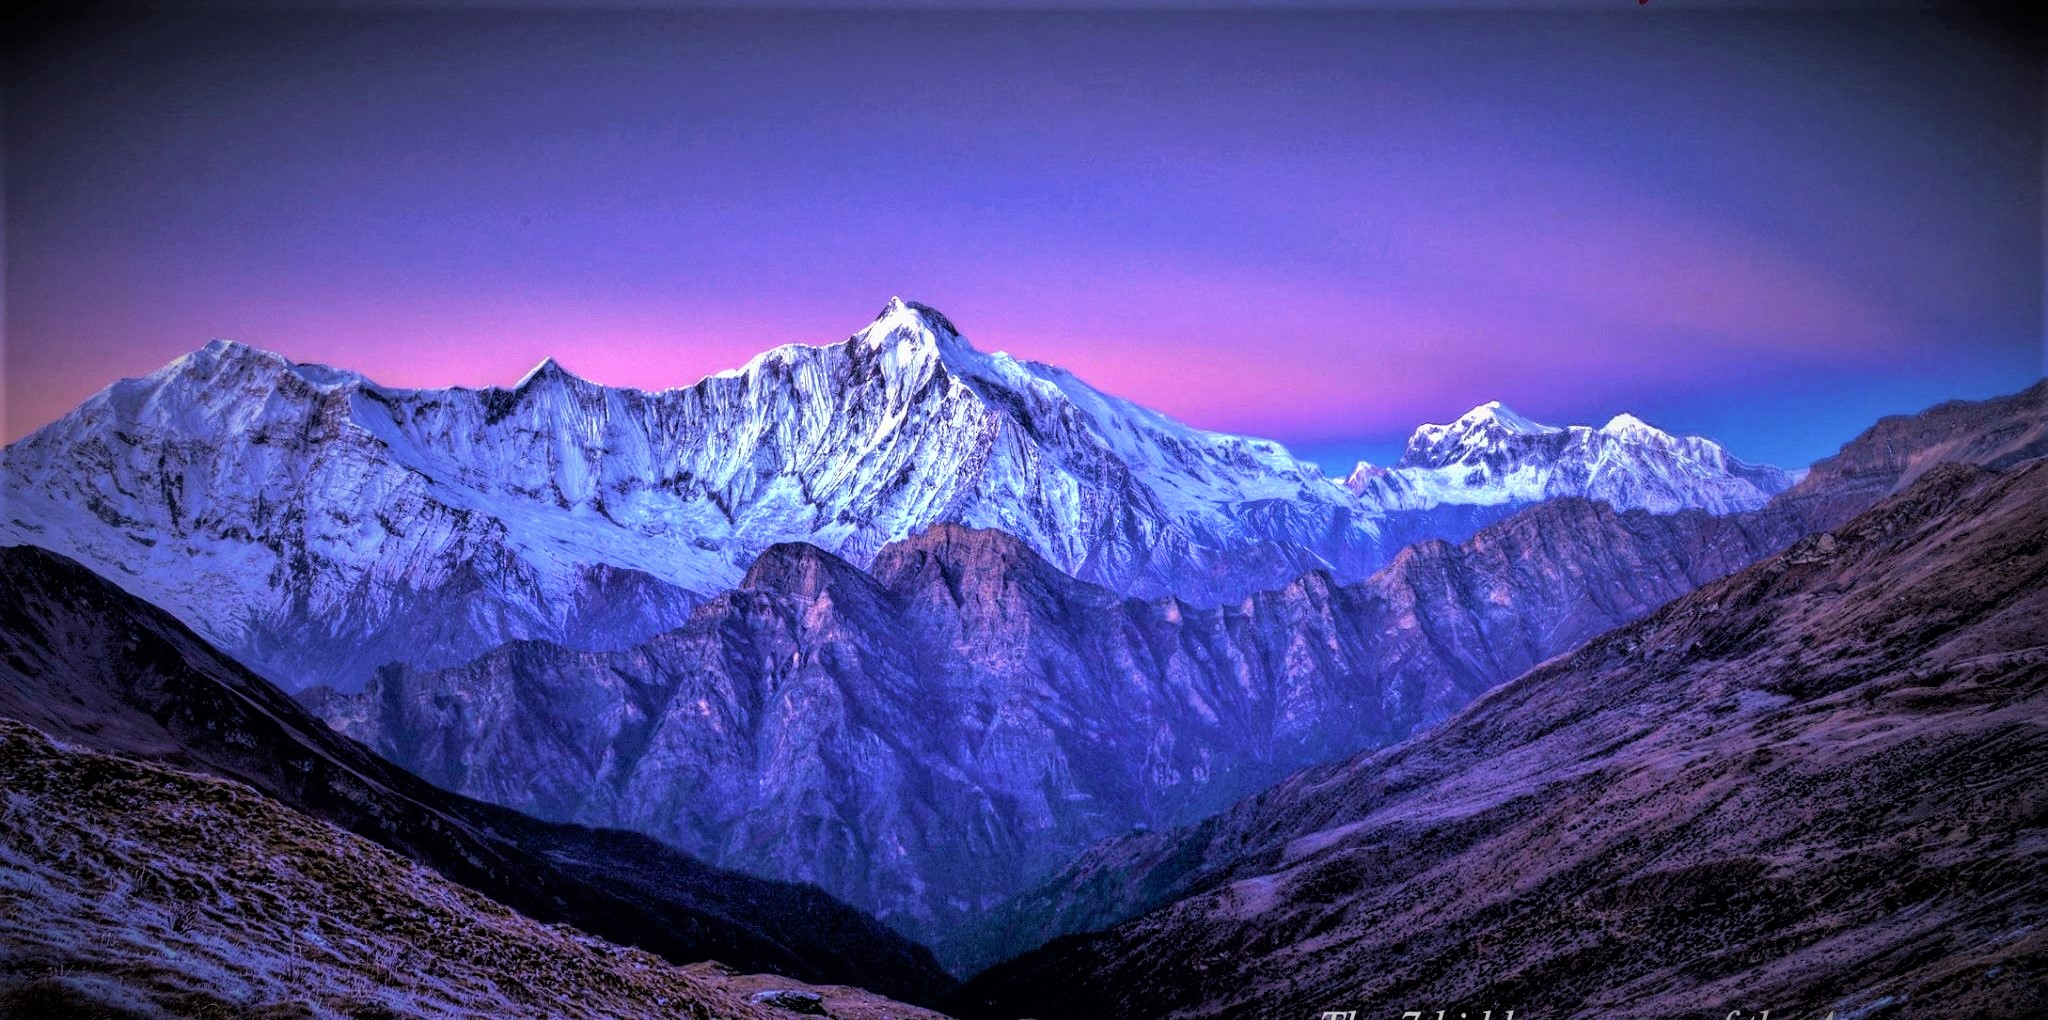 Everest, Himalayas/ Annapurna Pathway. Altitude: 18,000ft - 23.000 ft above sealevel